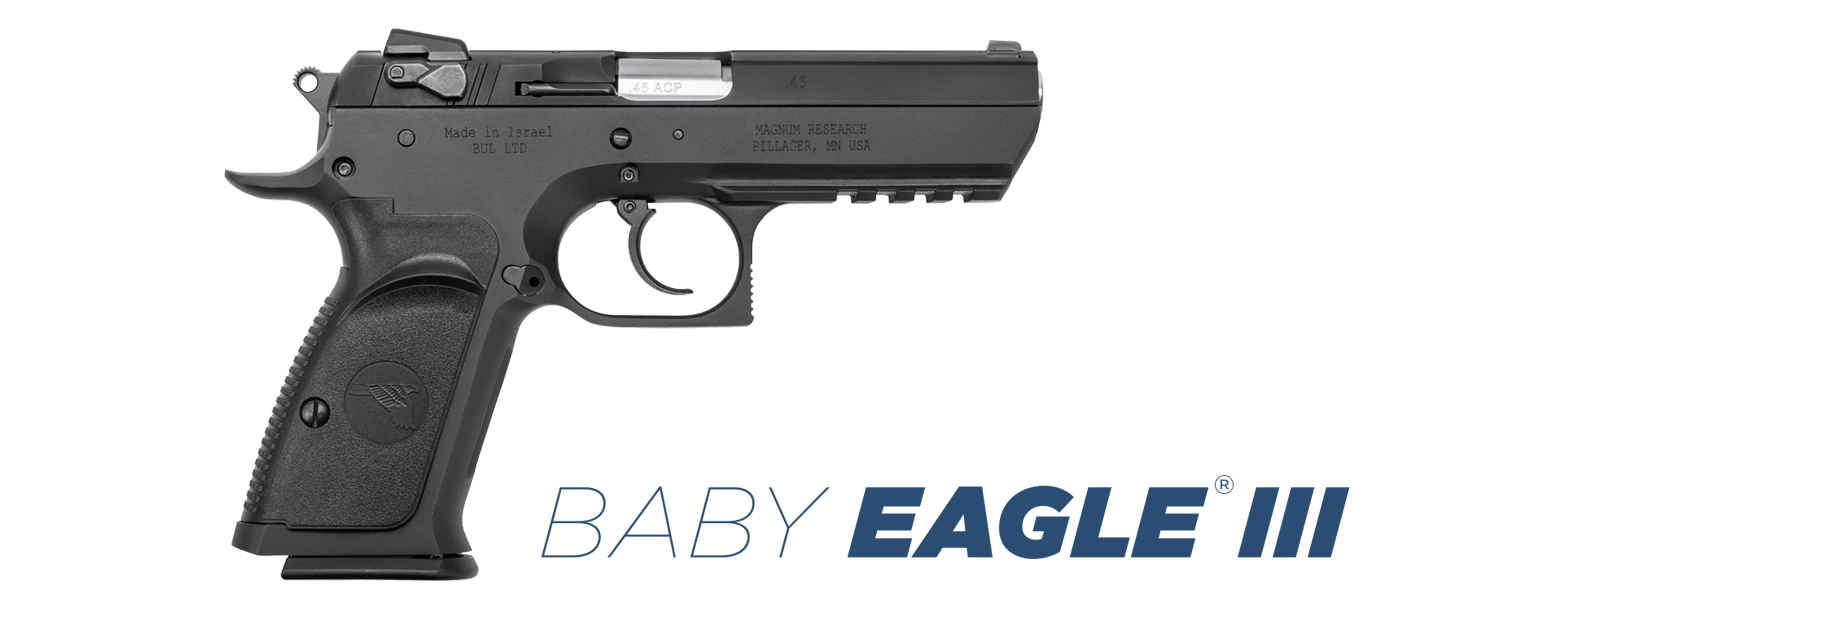 Baby Eagle Magnum Research Inc Desert Eagle Pistols And Bfr Revolvers